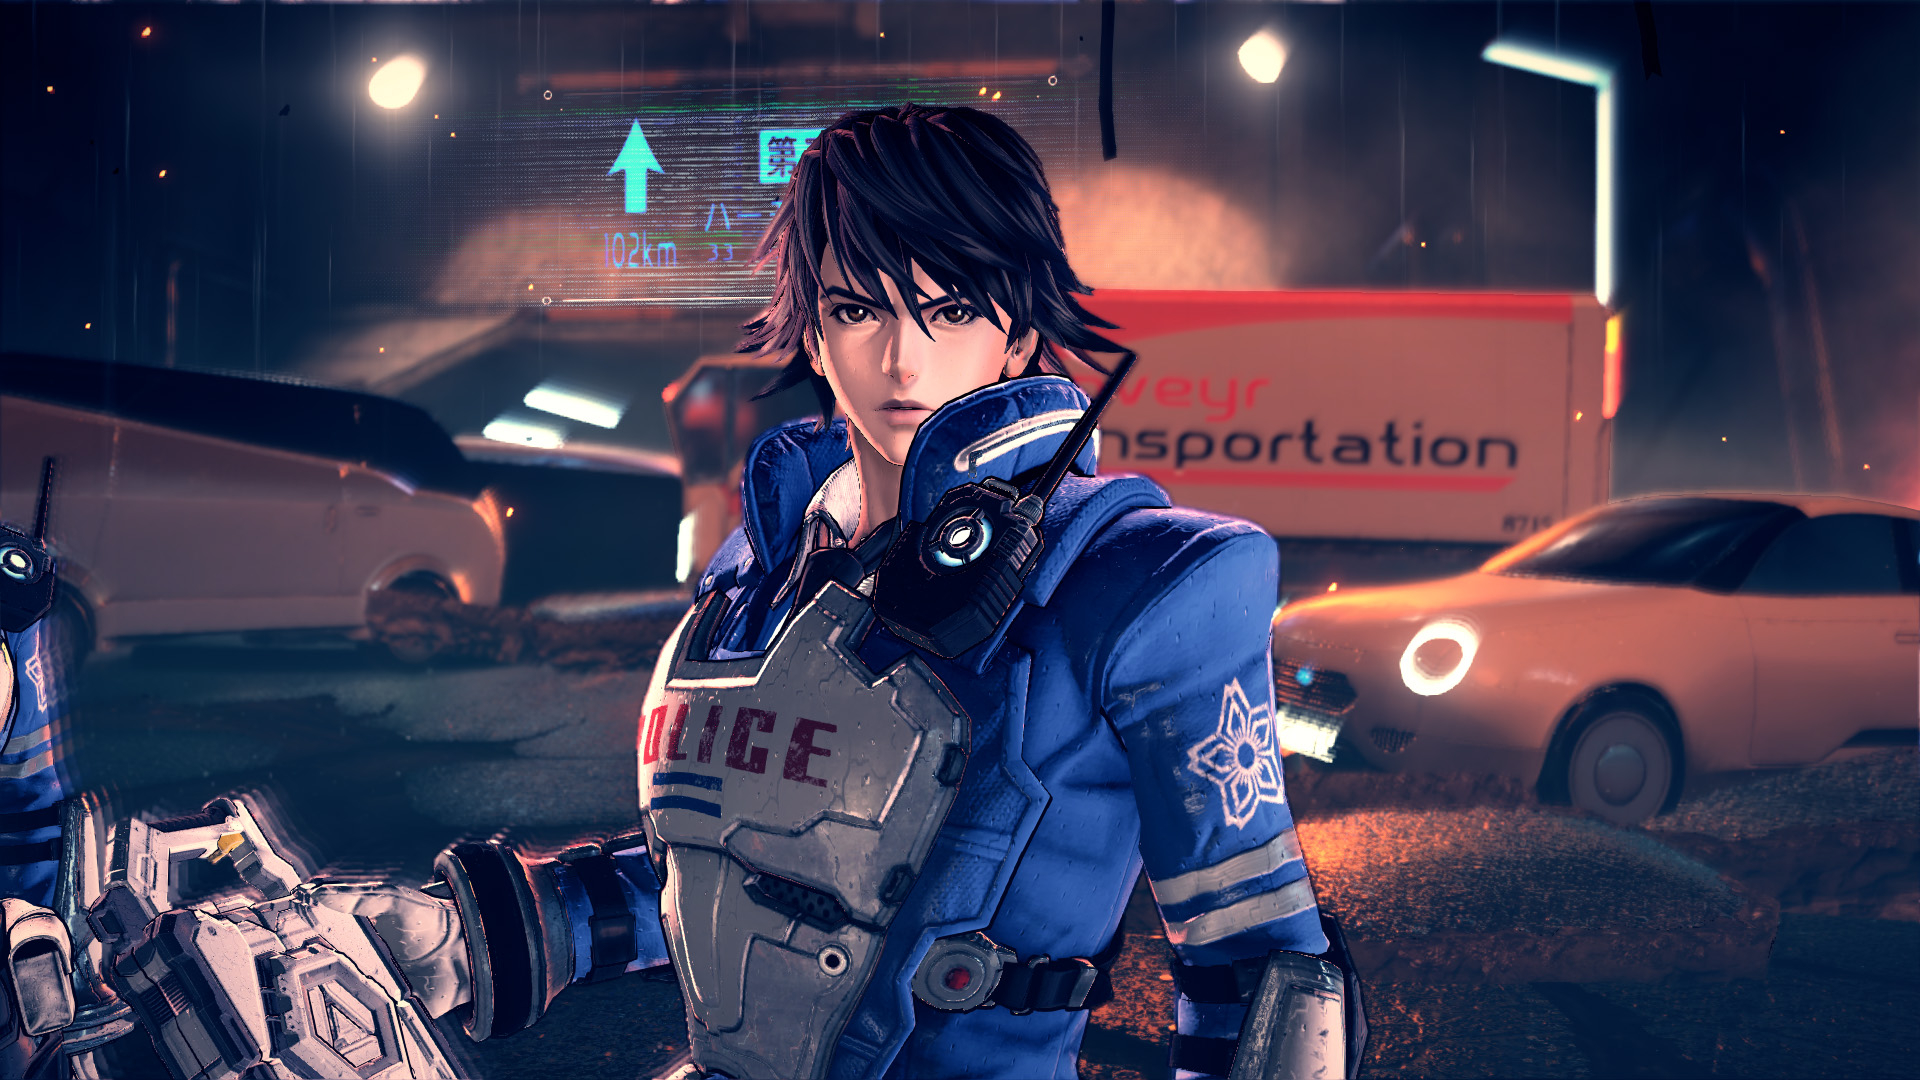 Astral Chain Dev Blog Looks at How Mission Structure Changed in Development